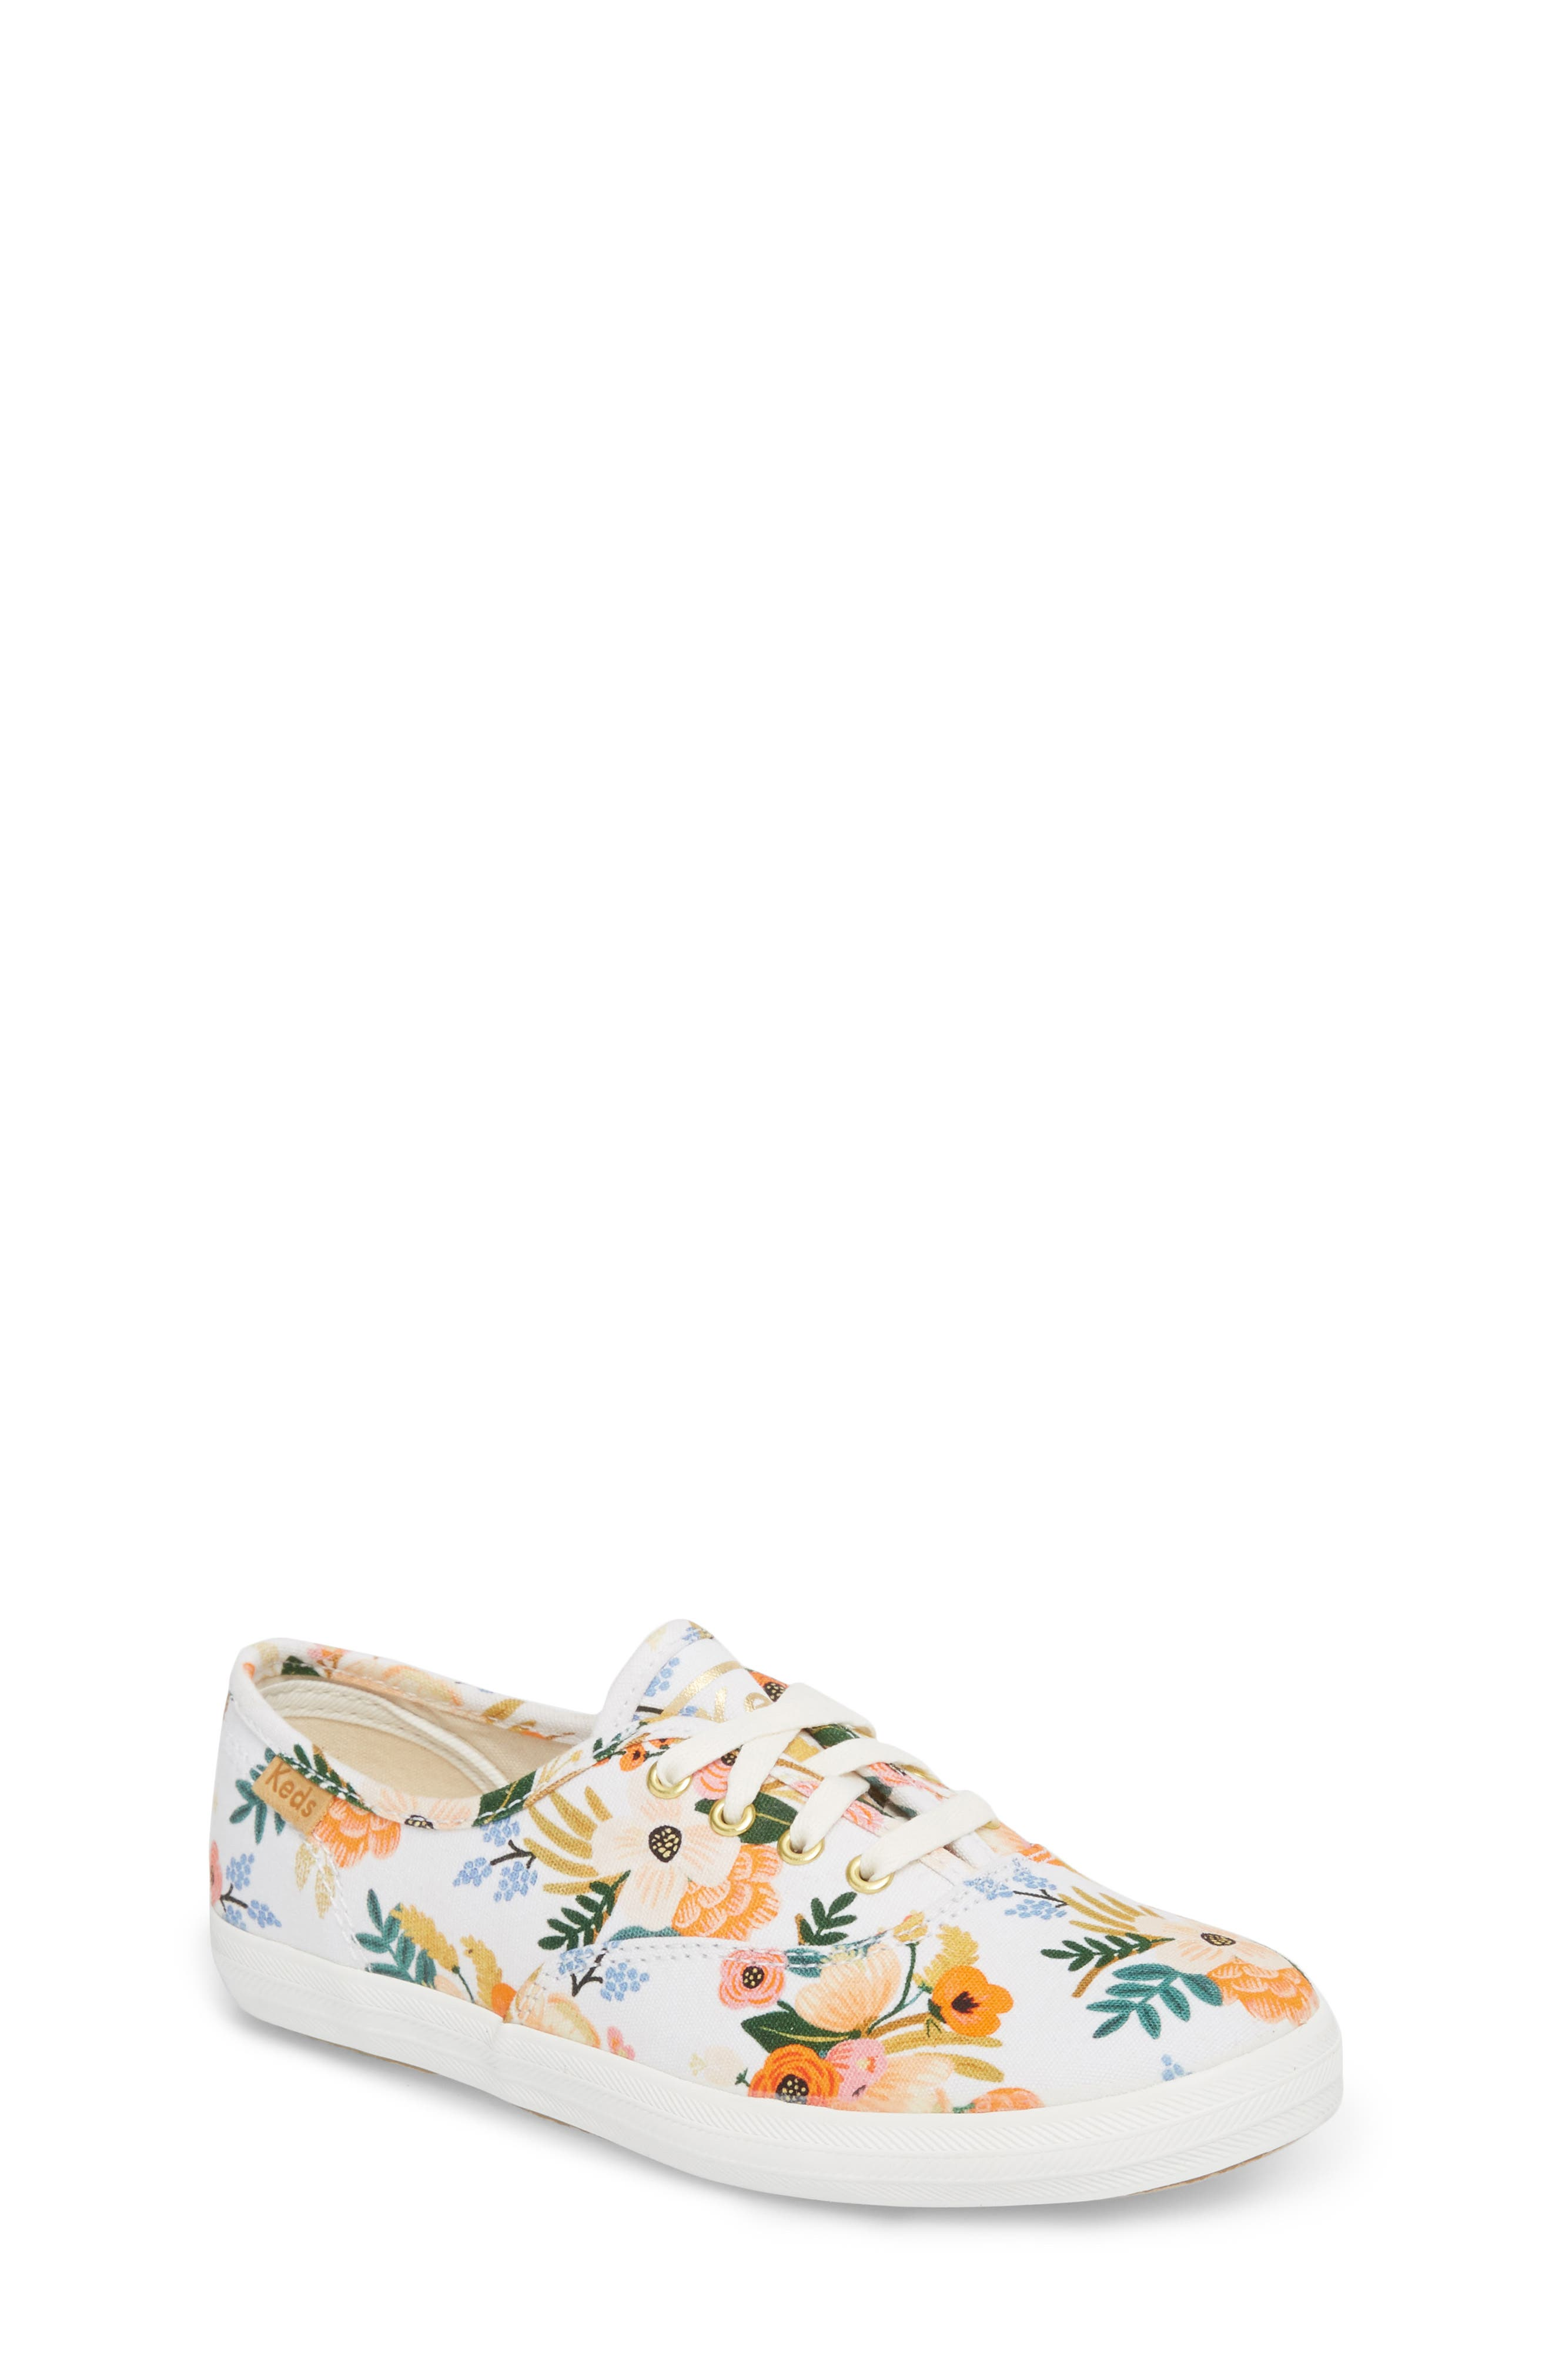 Keds® x Rifle Paper Co. Floral Print Champion Sneaker (Baby, Walker, Toddler, Little Kid & Big Kid)